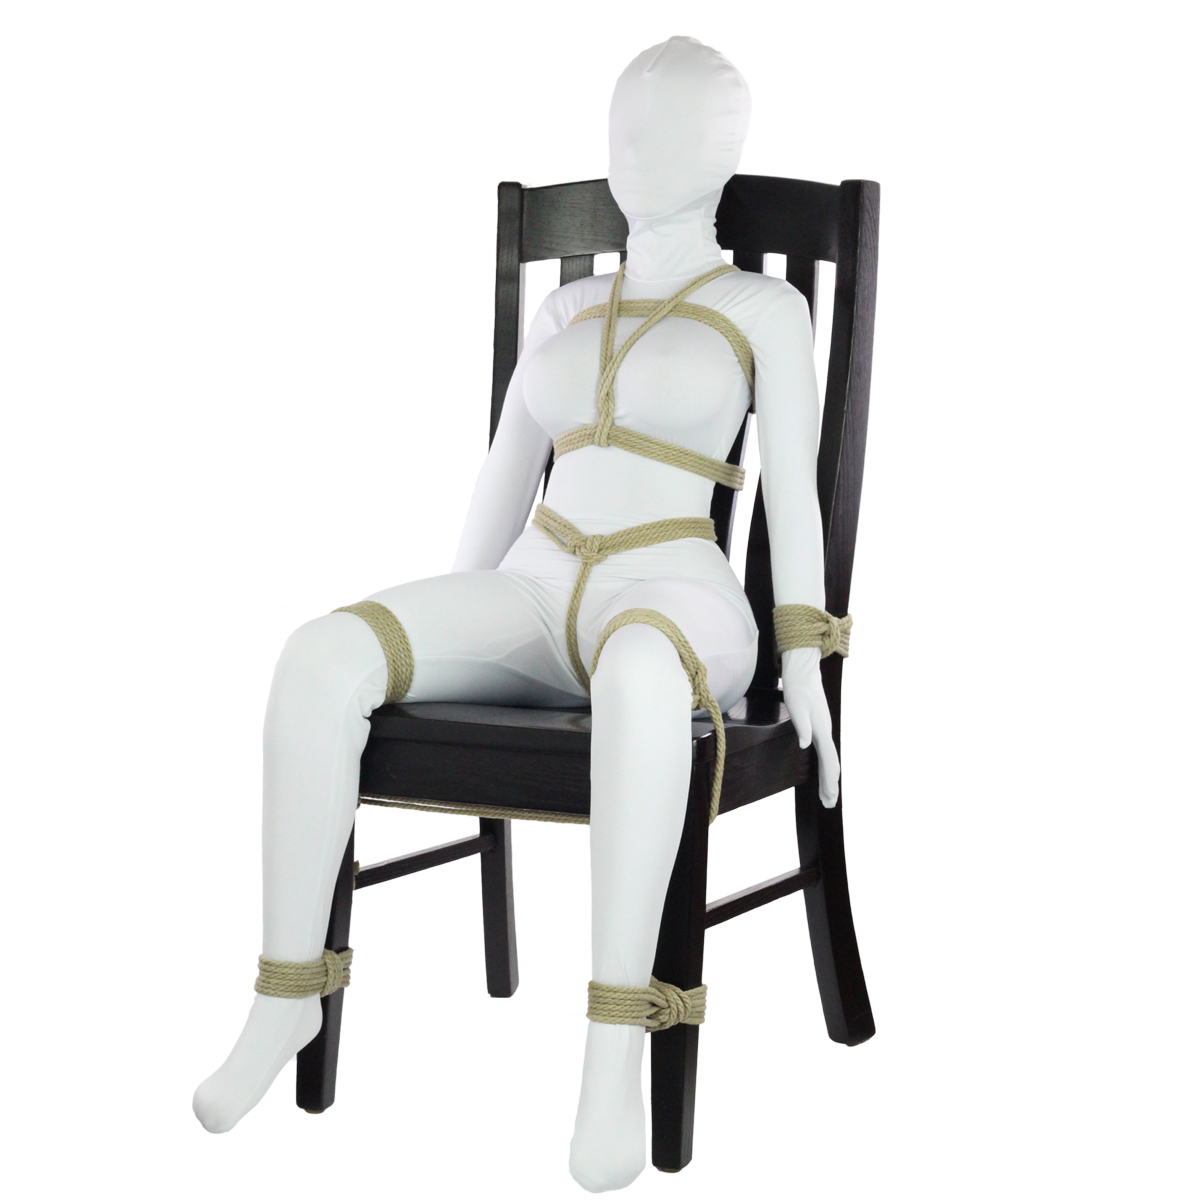 Chair-Tie--Armless-Chair